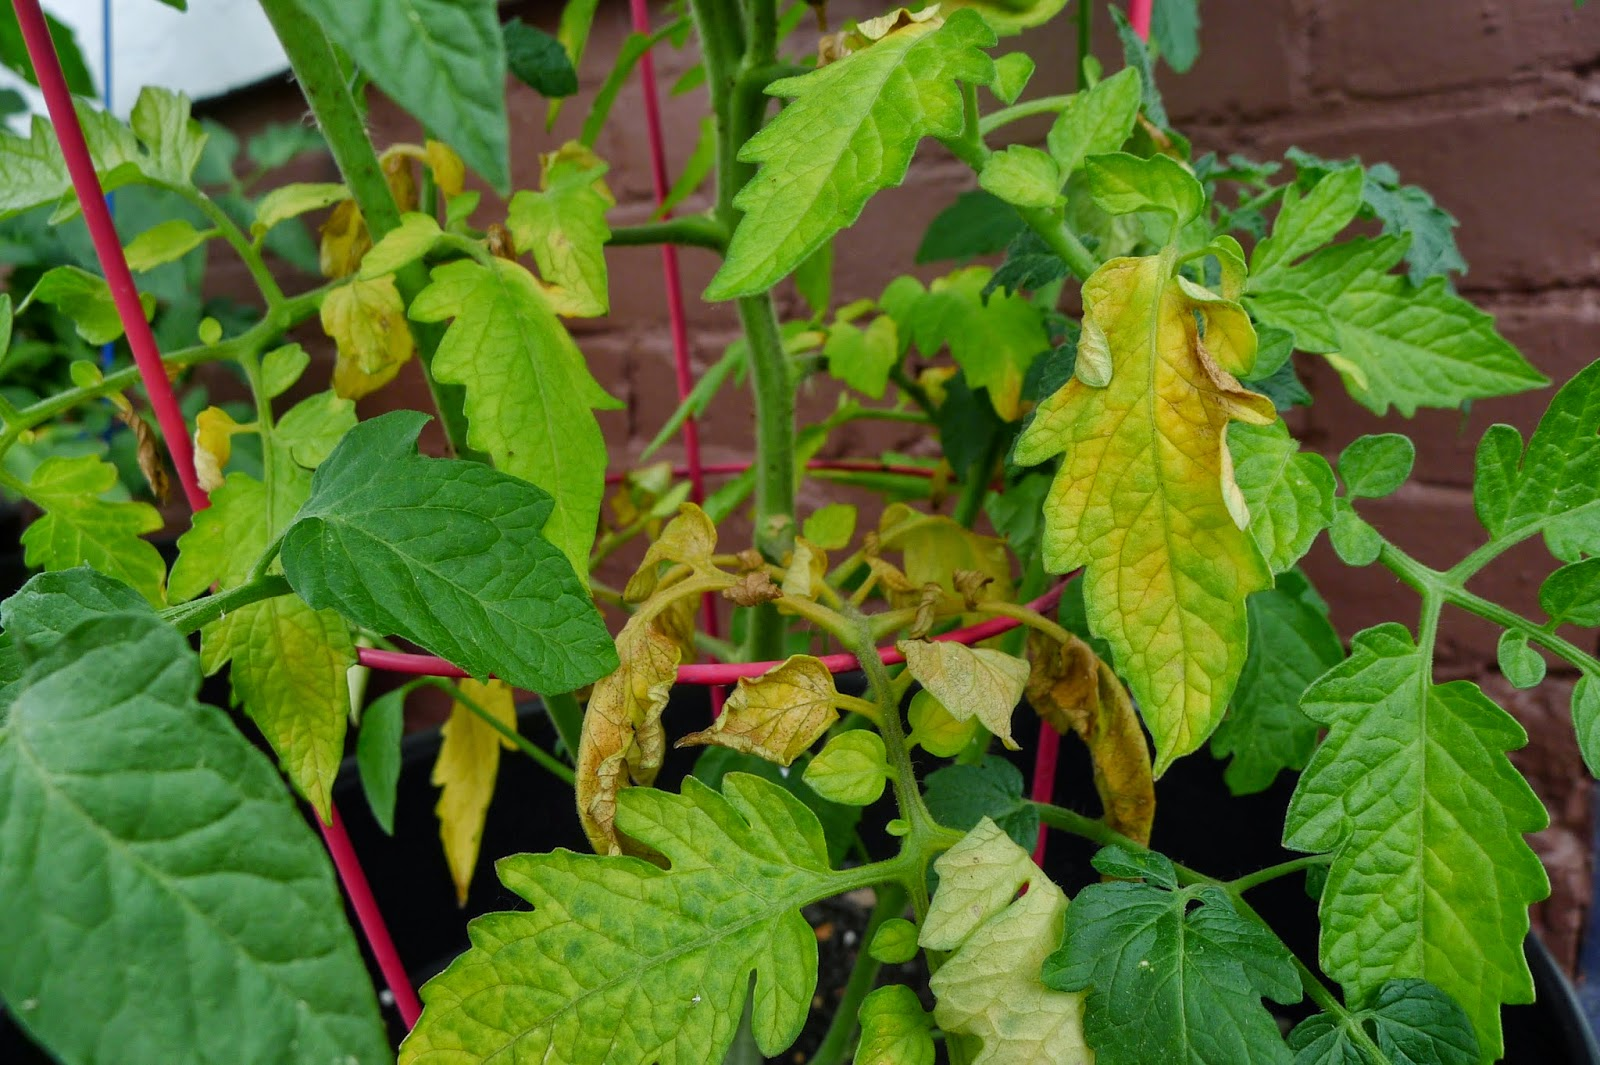 Tomato plants with yellow leaves, tomatoes, urban farming